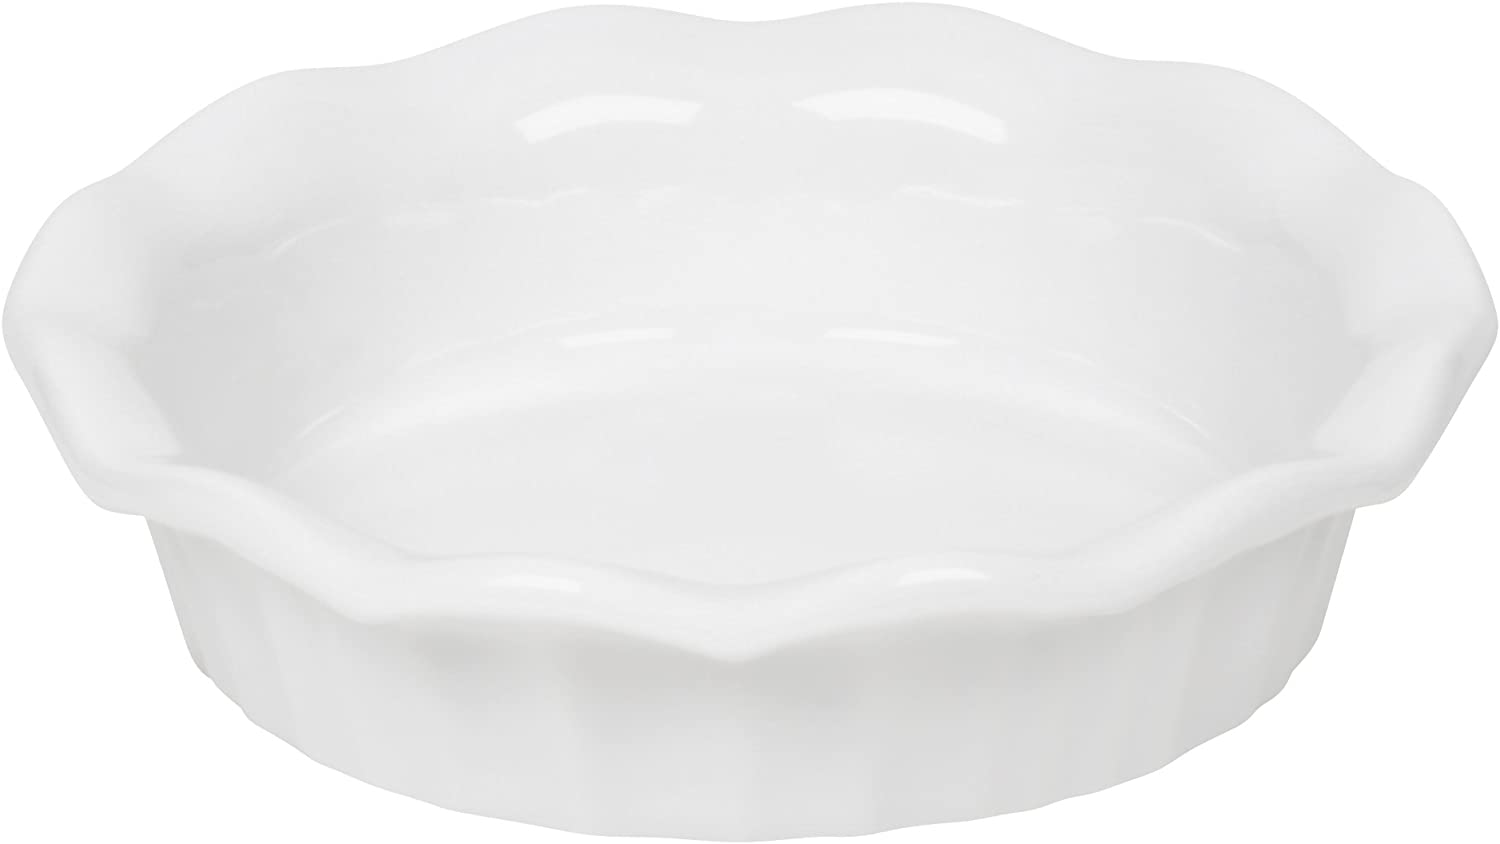 Corningware French White III Mini Pie Plate